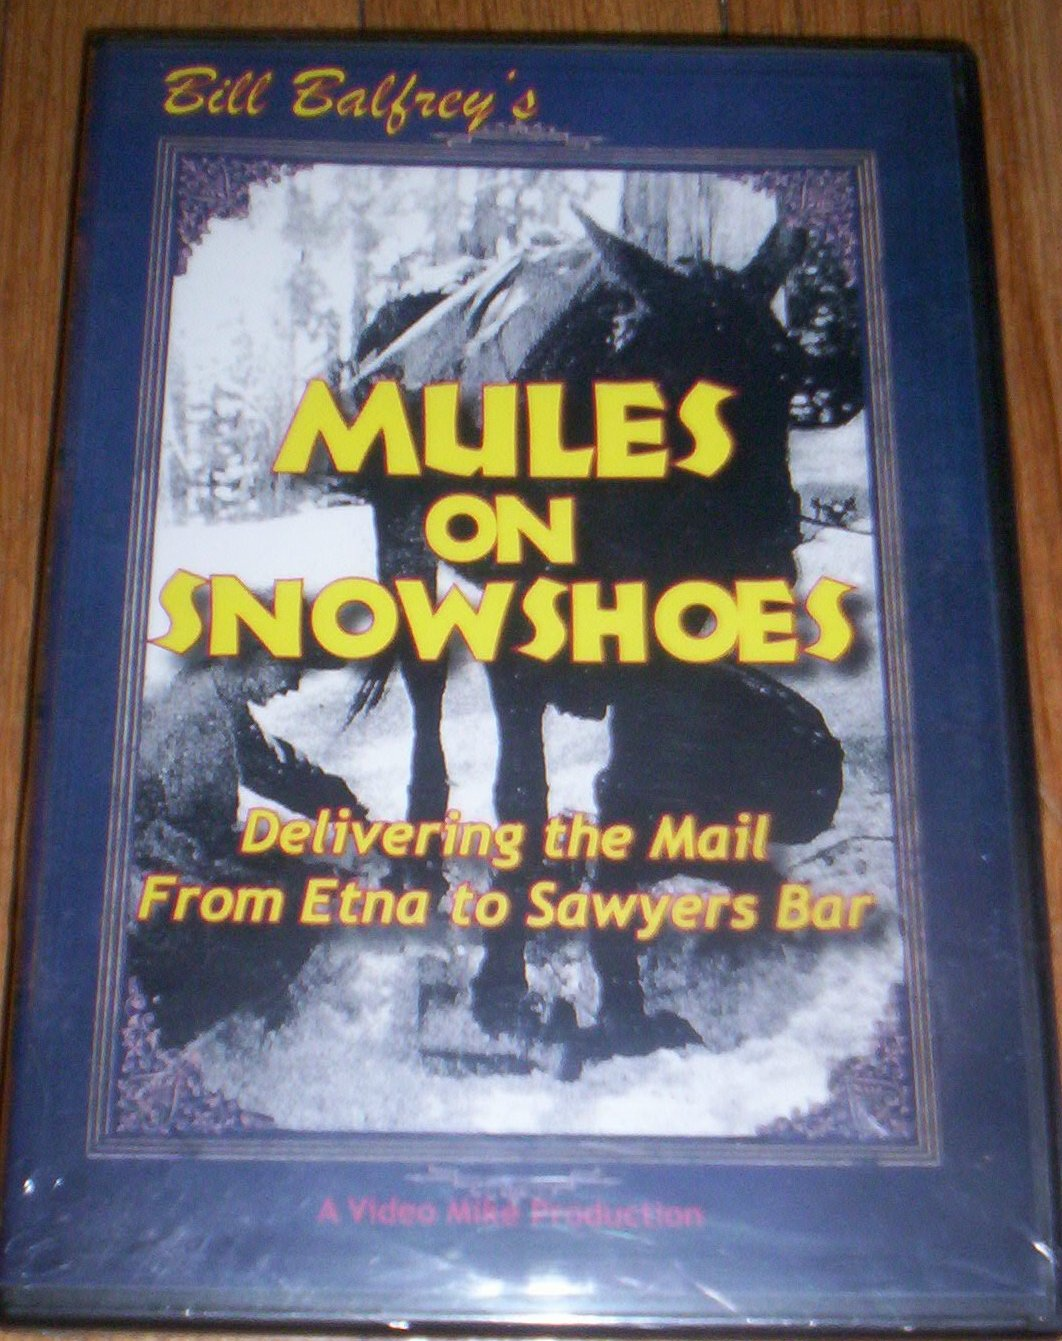 DVD - Mule on Snowshoes